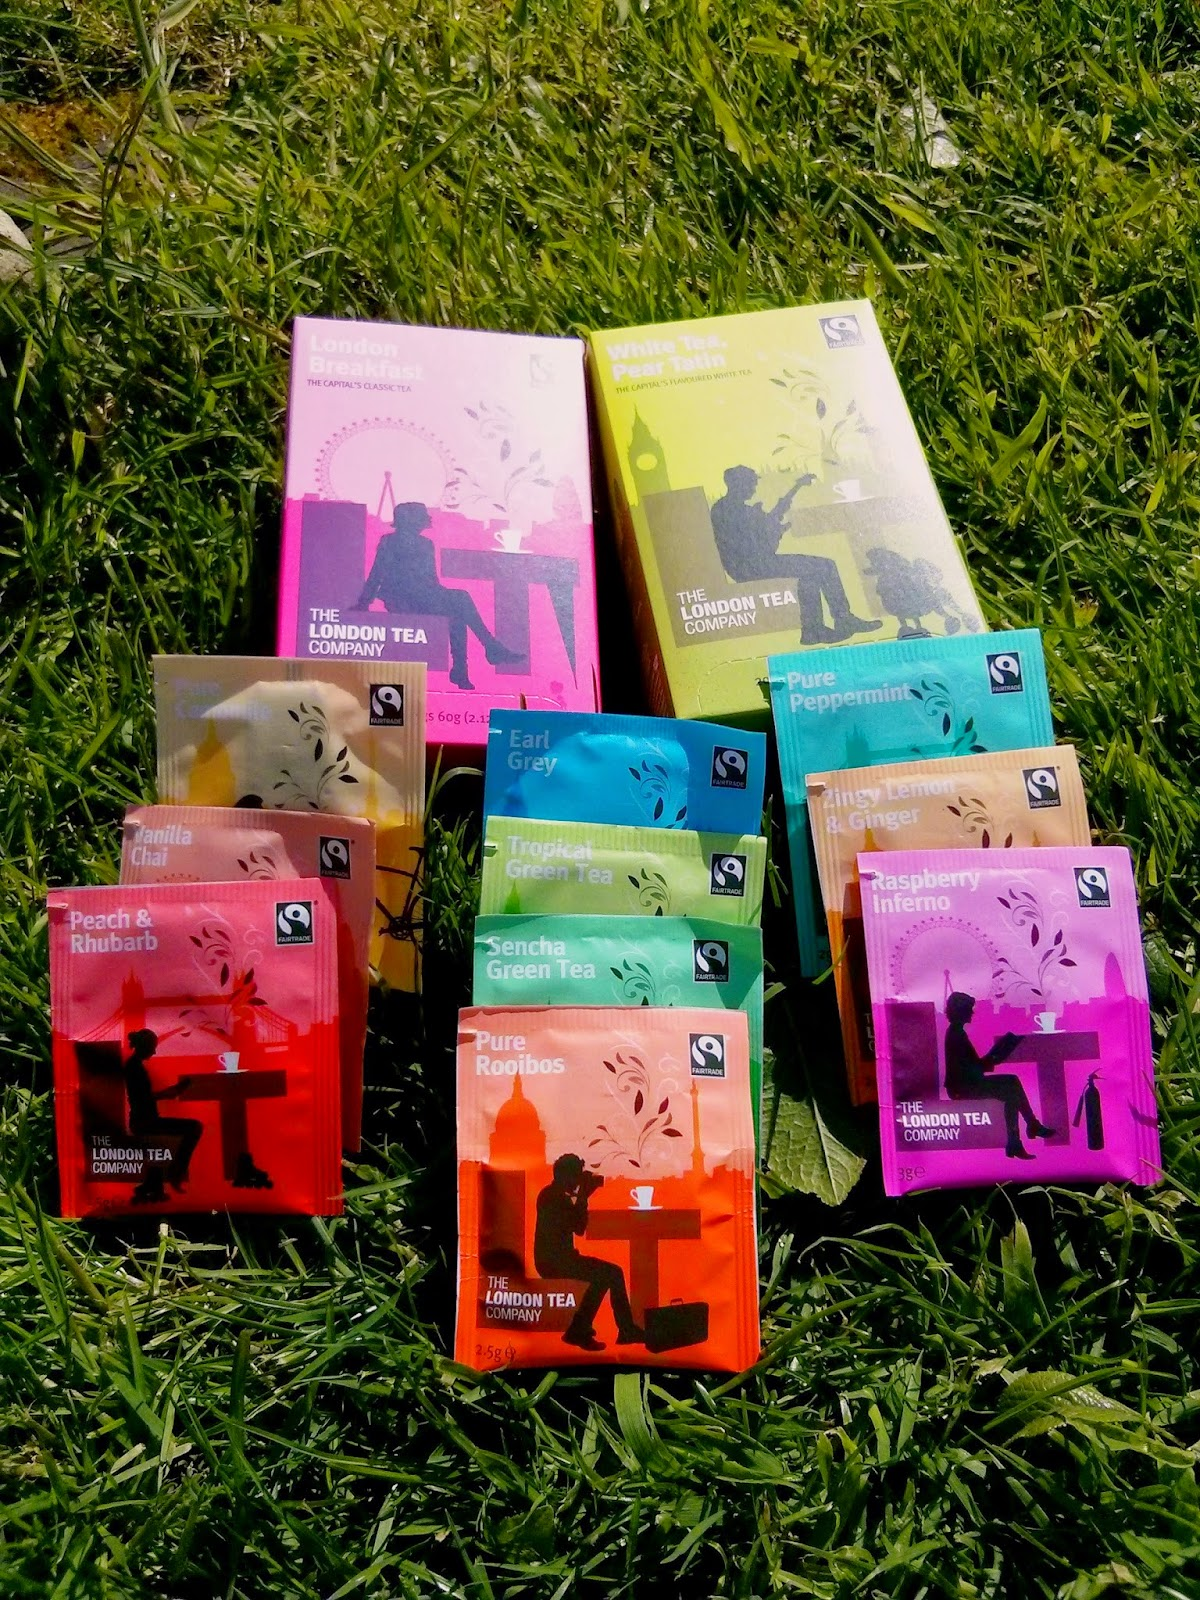 A selection of the London Tea Company range